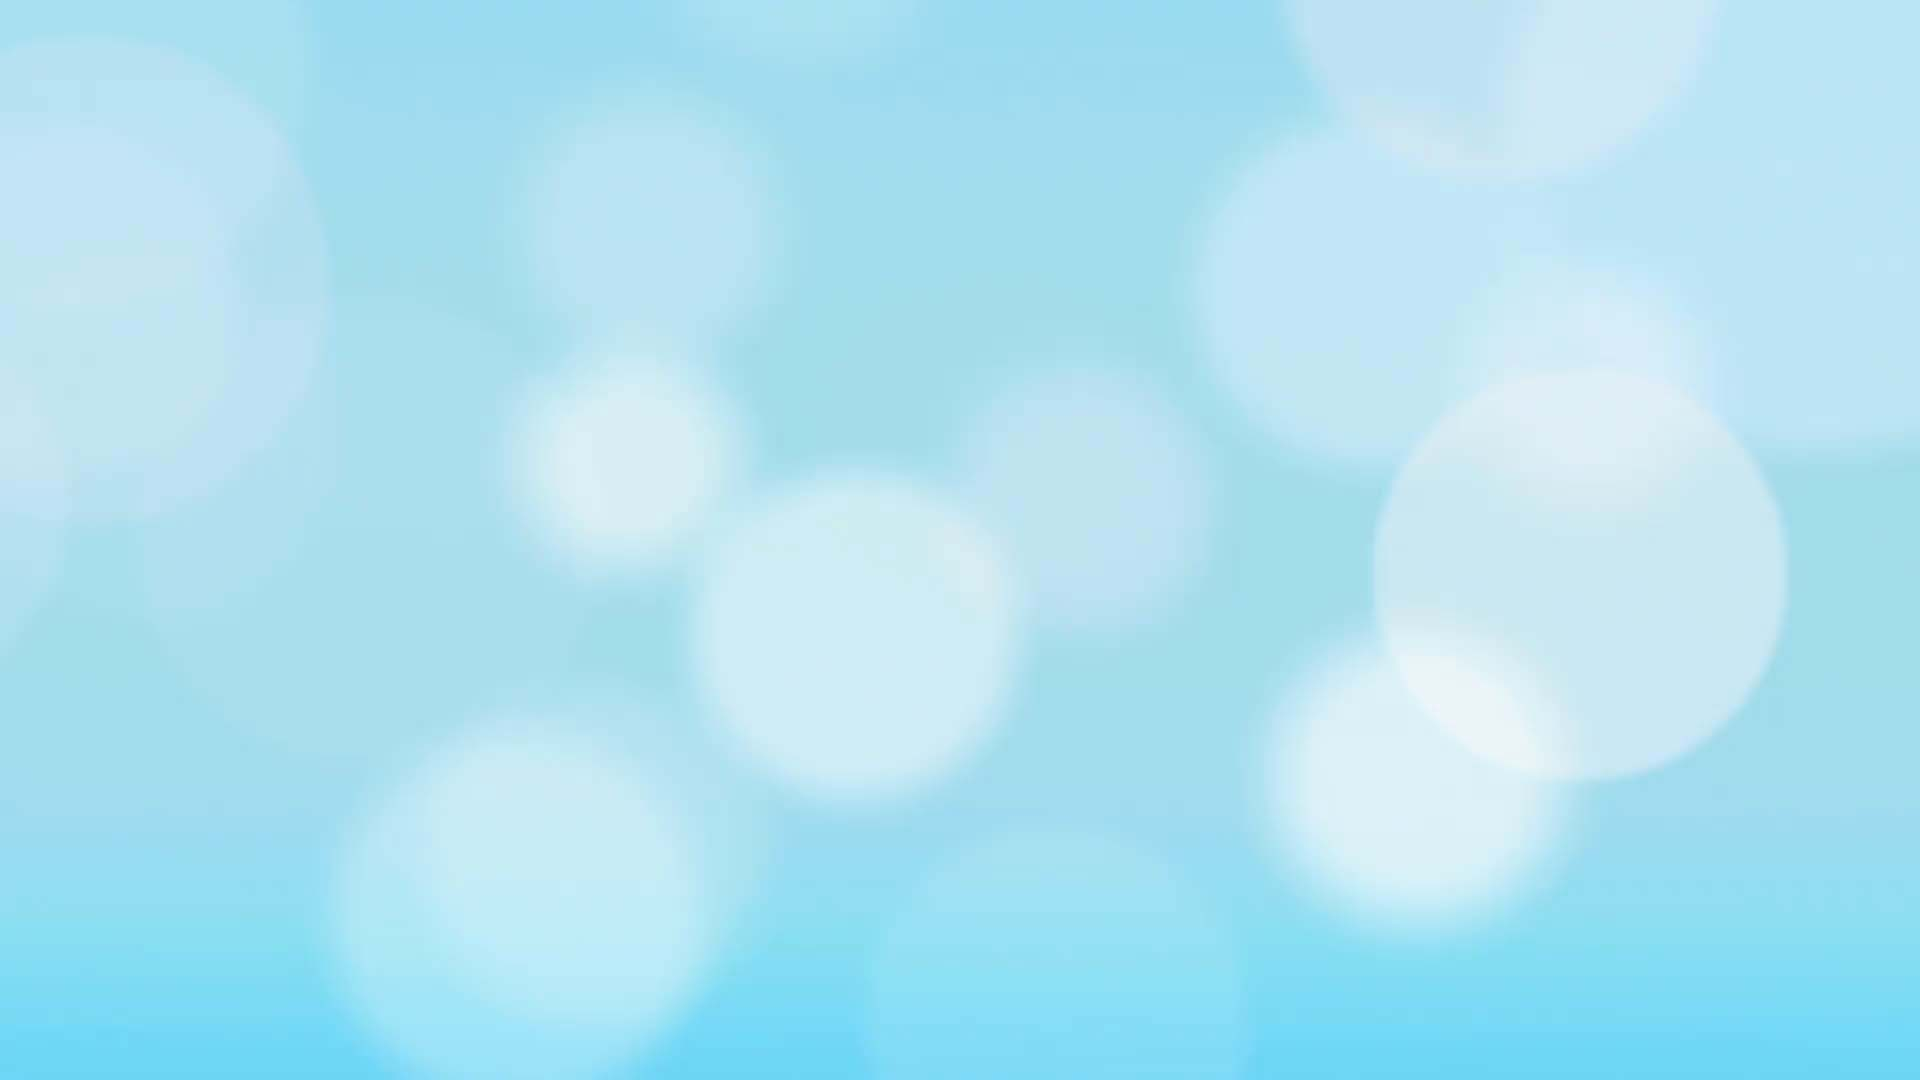 Blue pastel wallpaper